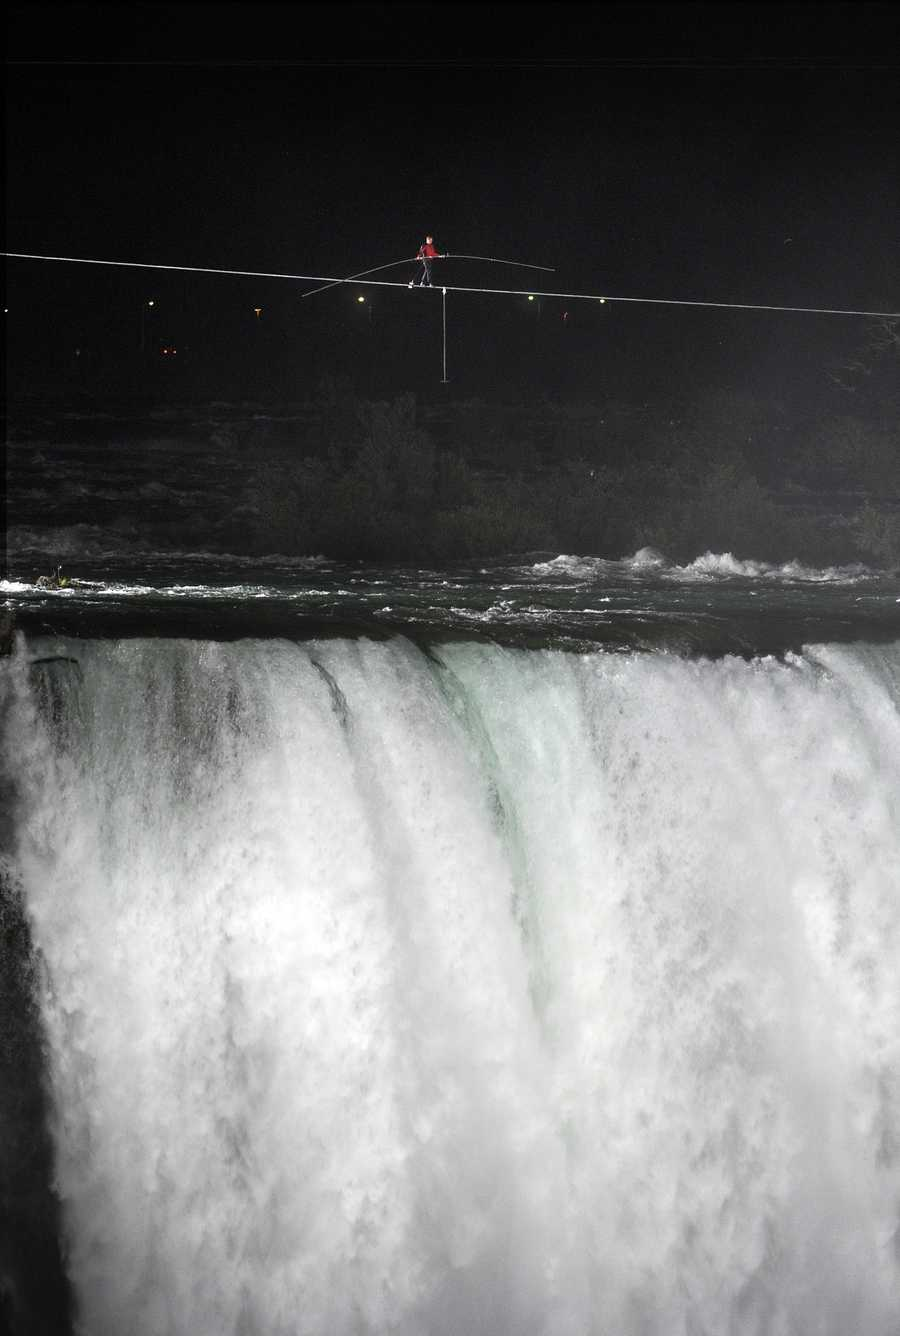 Wallenda crossed the Horseshoe Falls, which is the largest section of Niagara Falls.